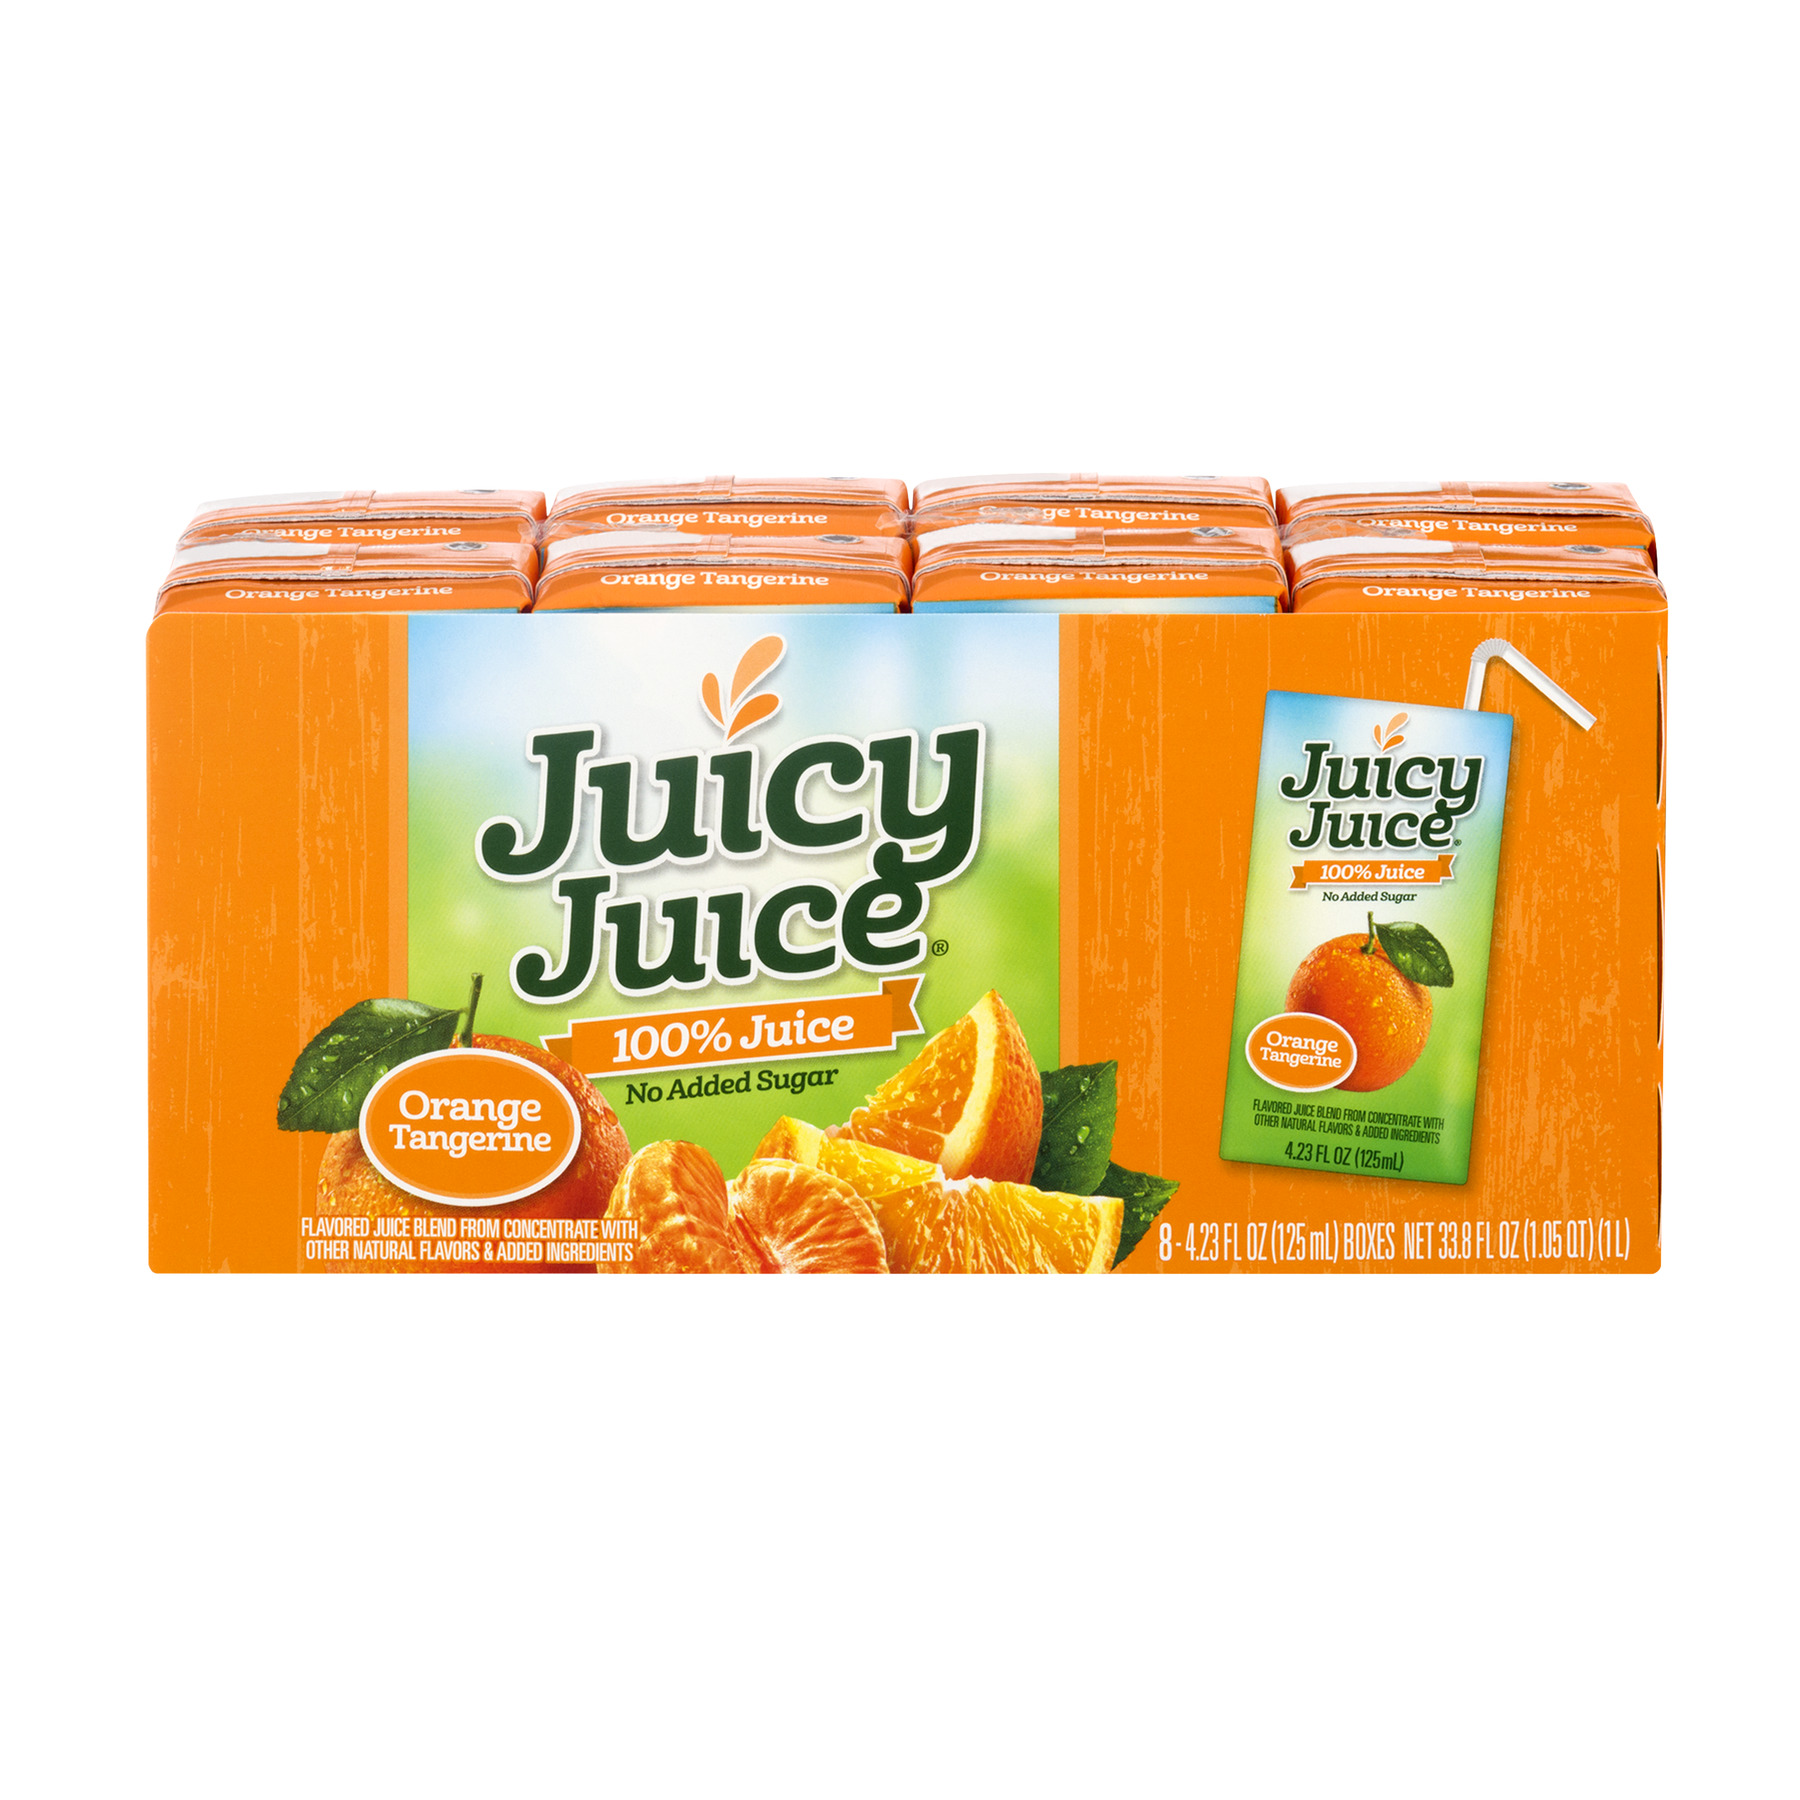 Juicy Juice 100% Juice, Orange Tangerine, 4.23 Fl Oz, 8 Count